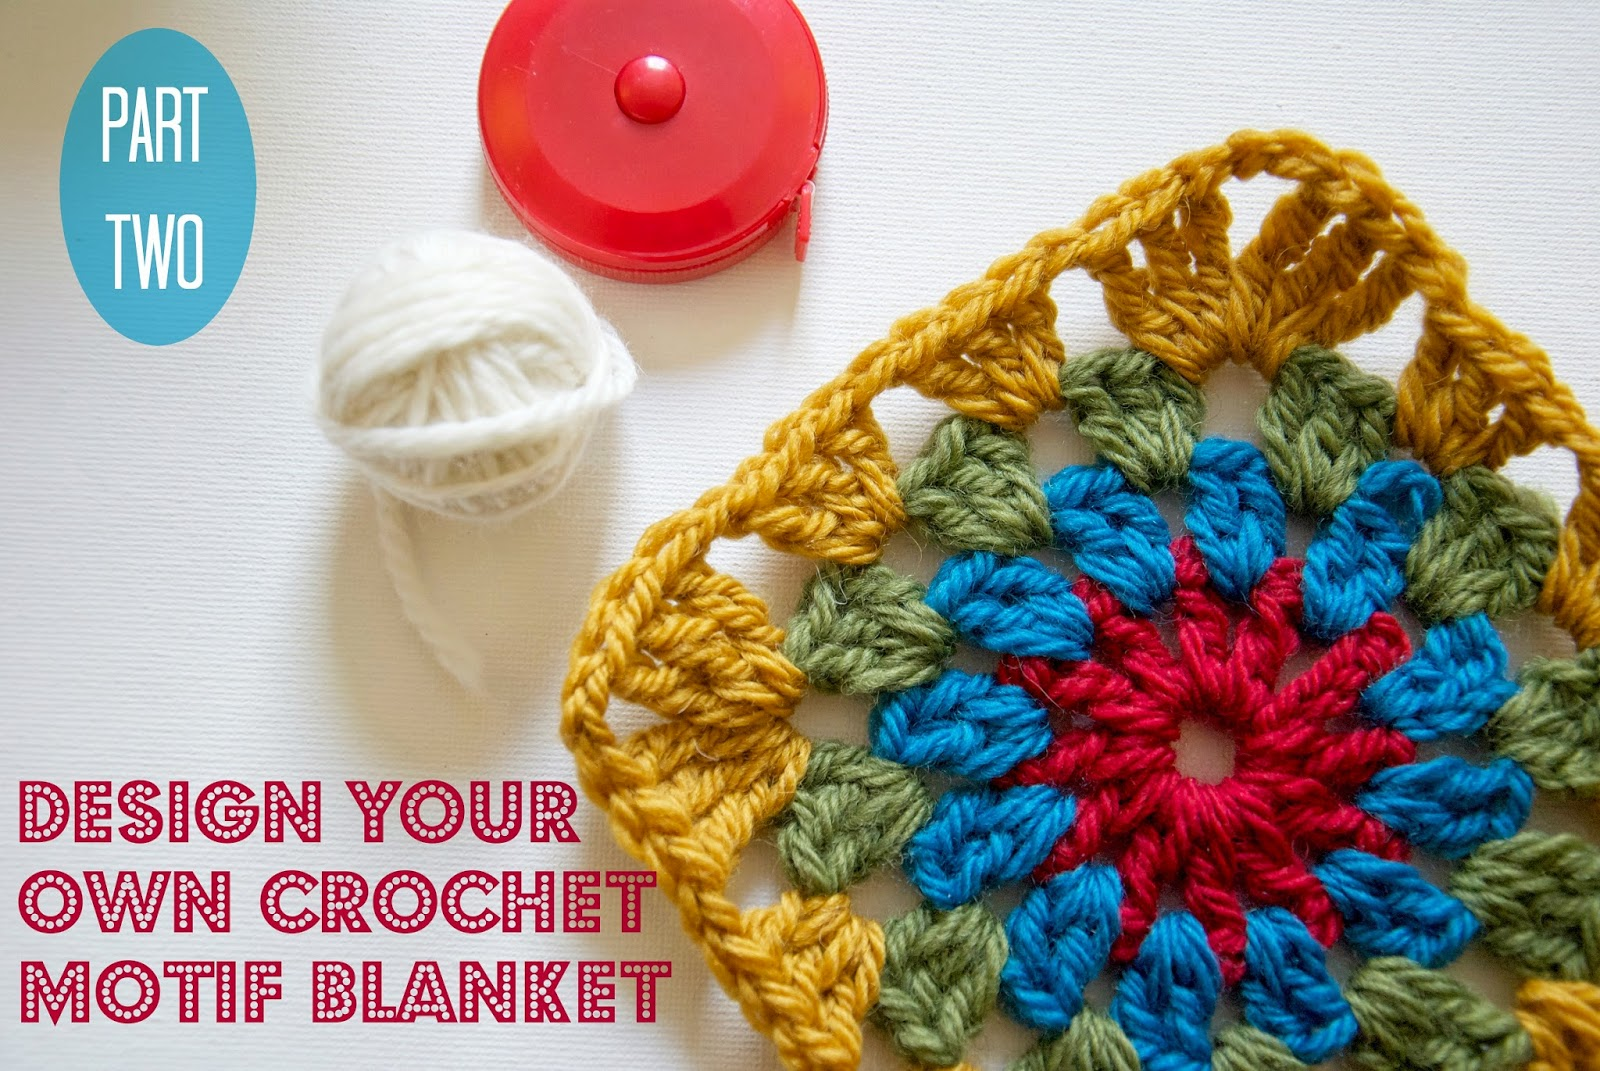 Step by step instructions for designing your own motif crochet blanket.